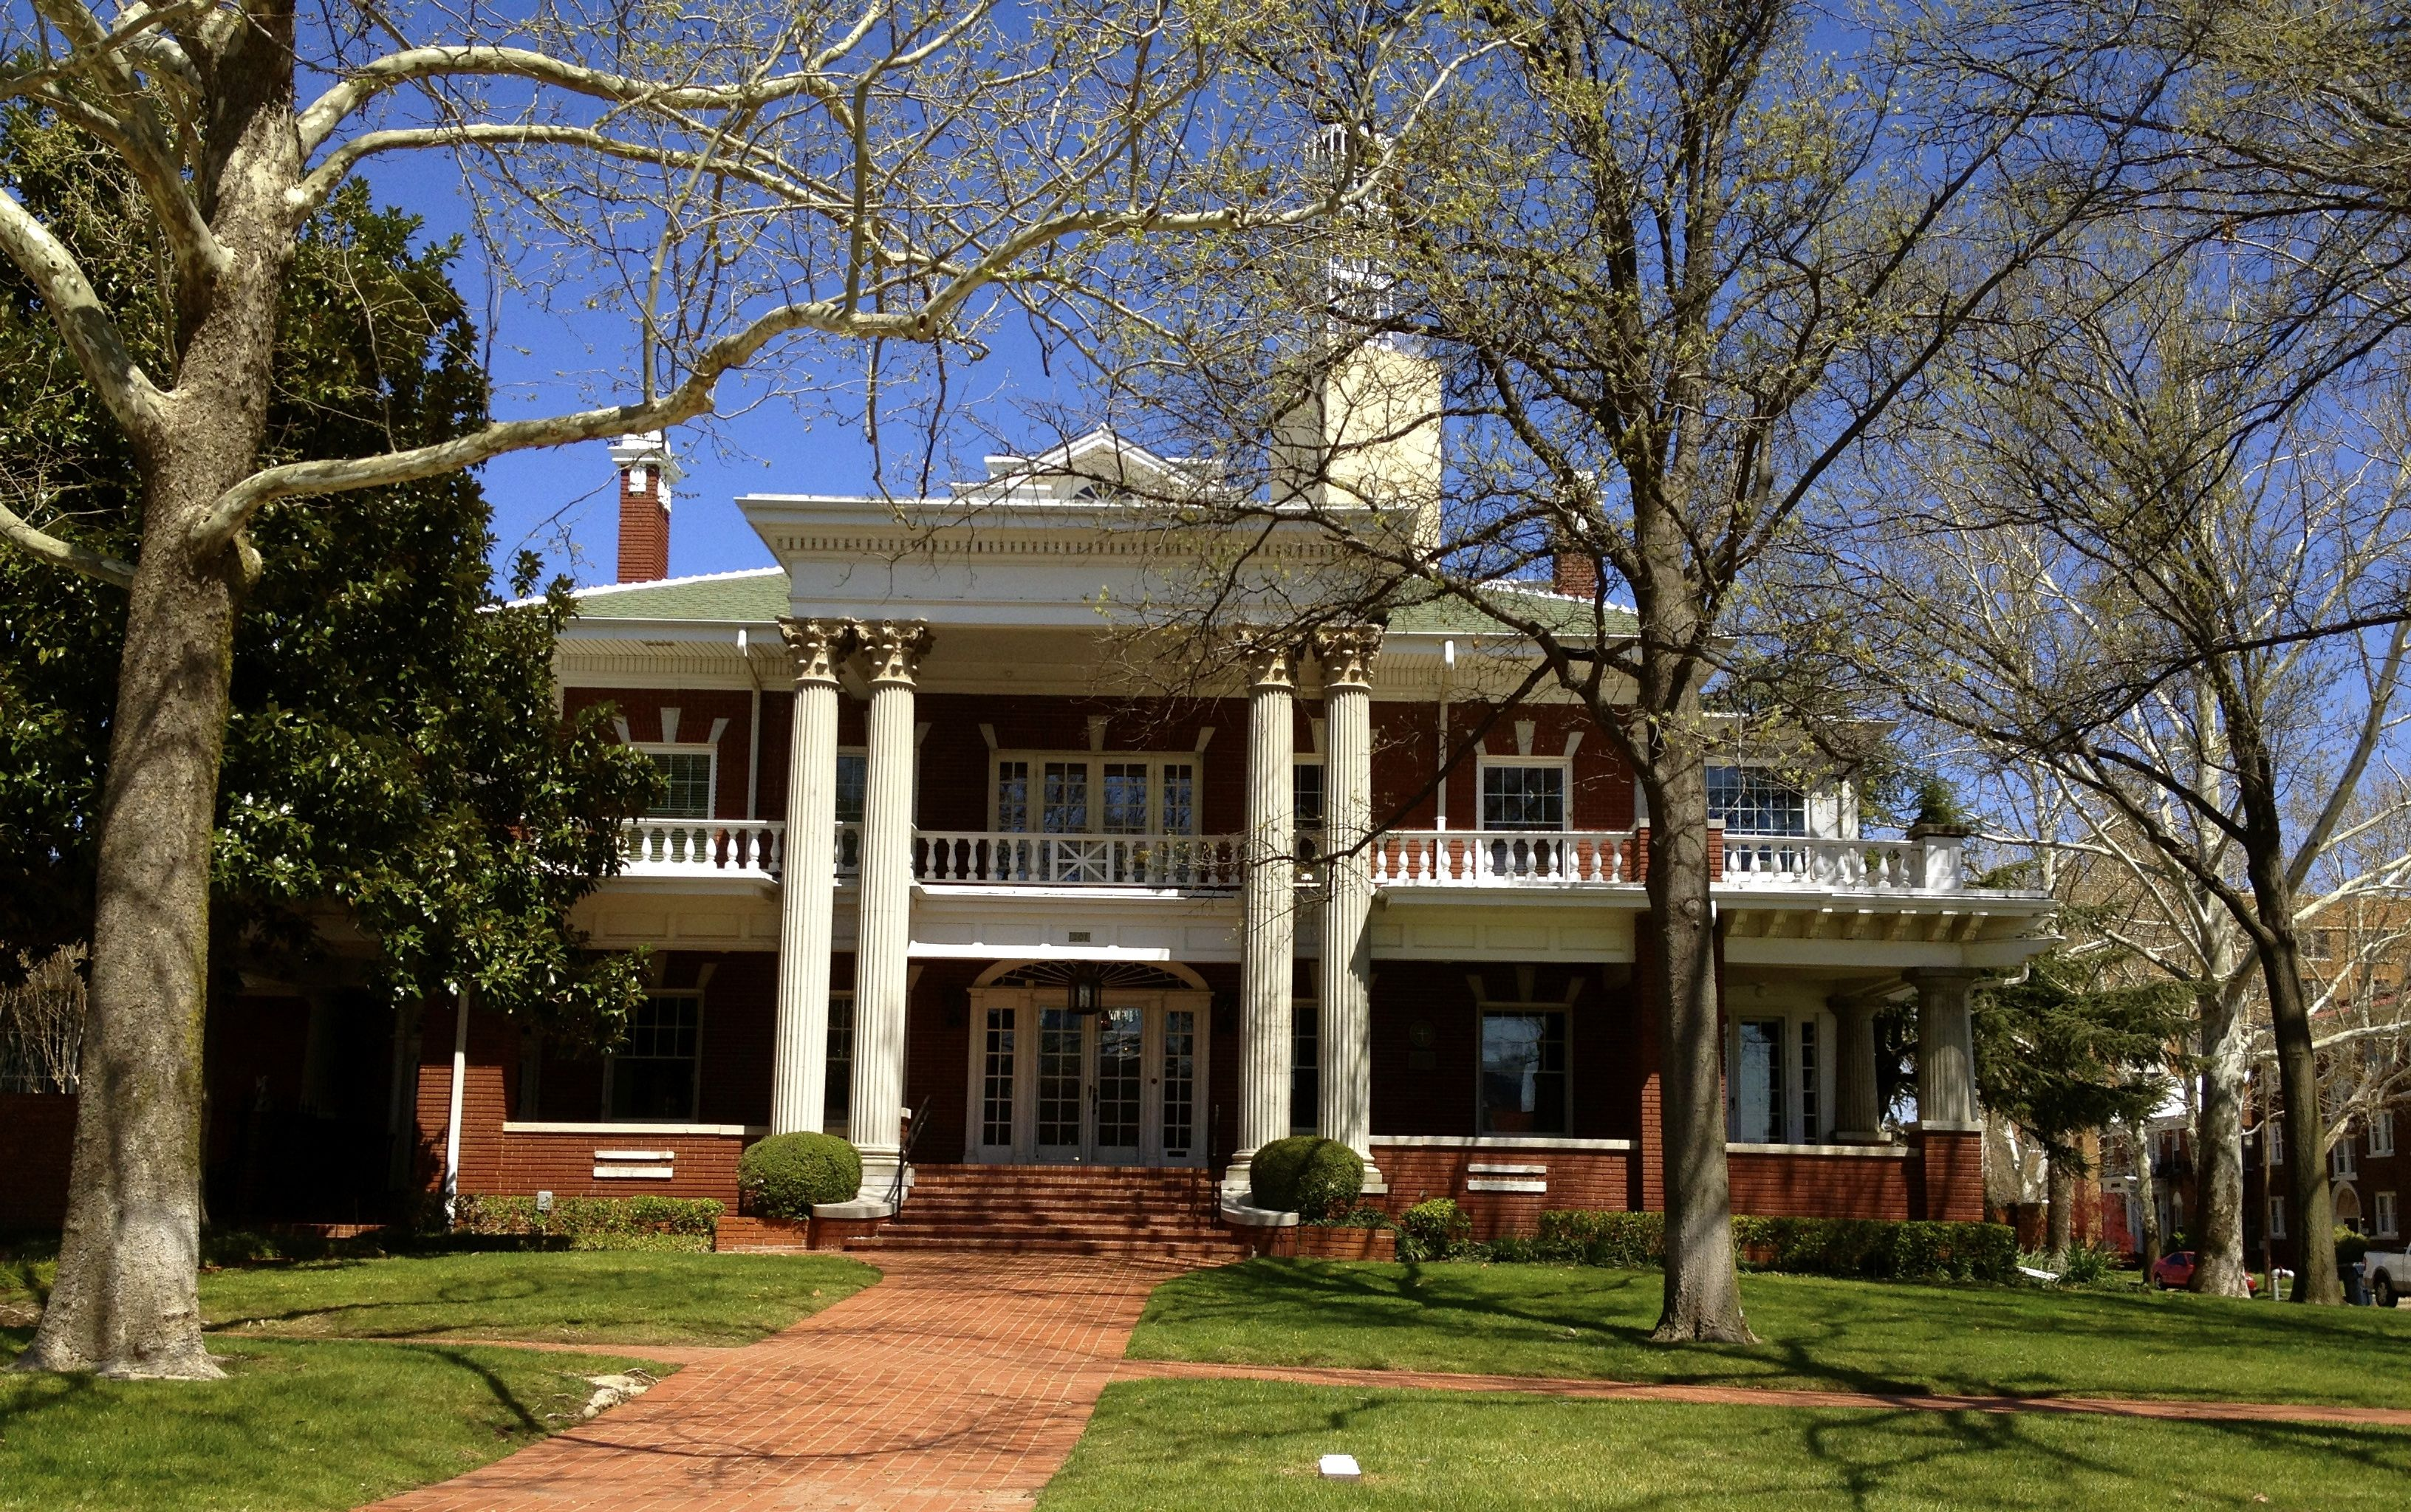 Oklahoma City beautiful historic home